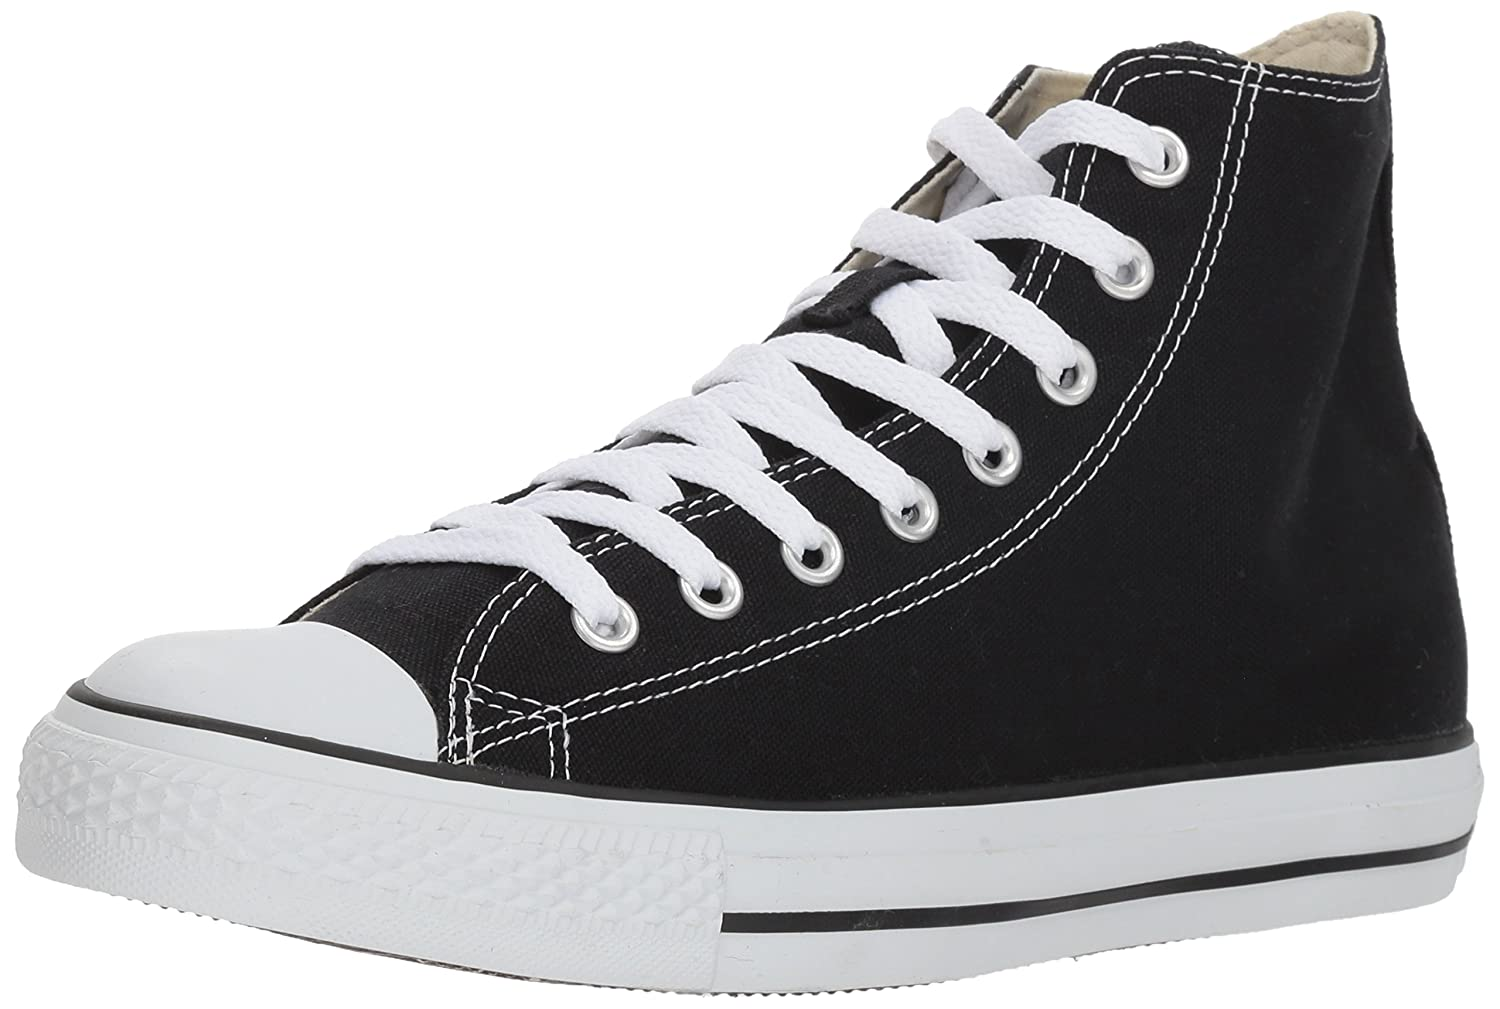 Converse Chuck Taylor All Star Core Hi B07B5TY9BB 37 5|Black